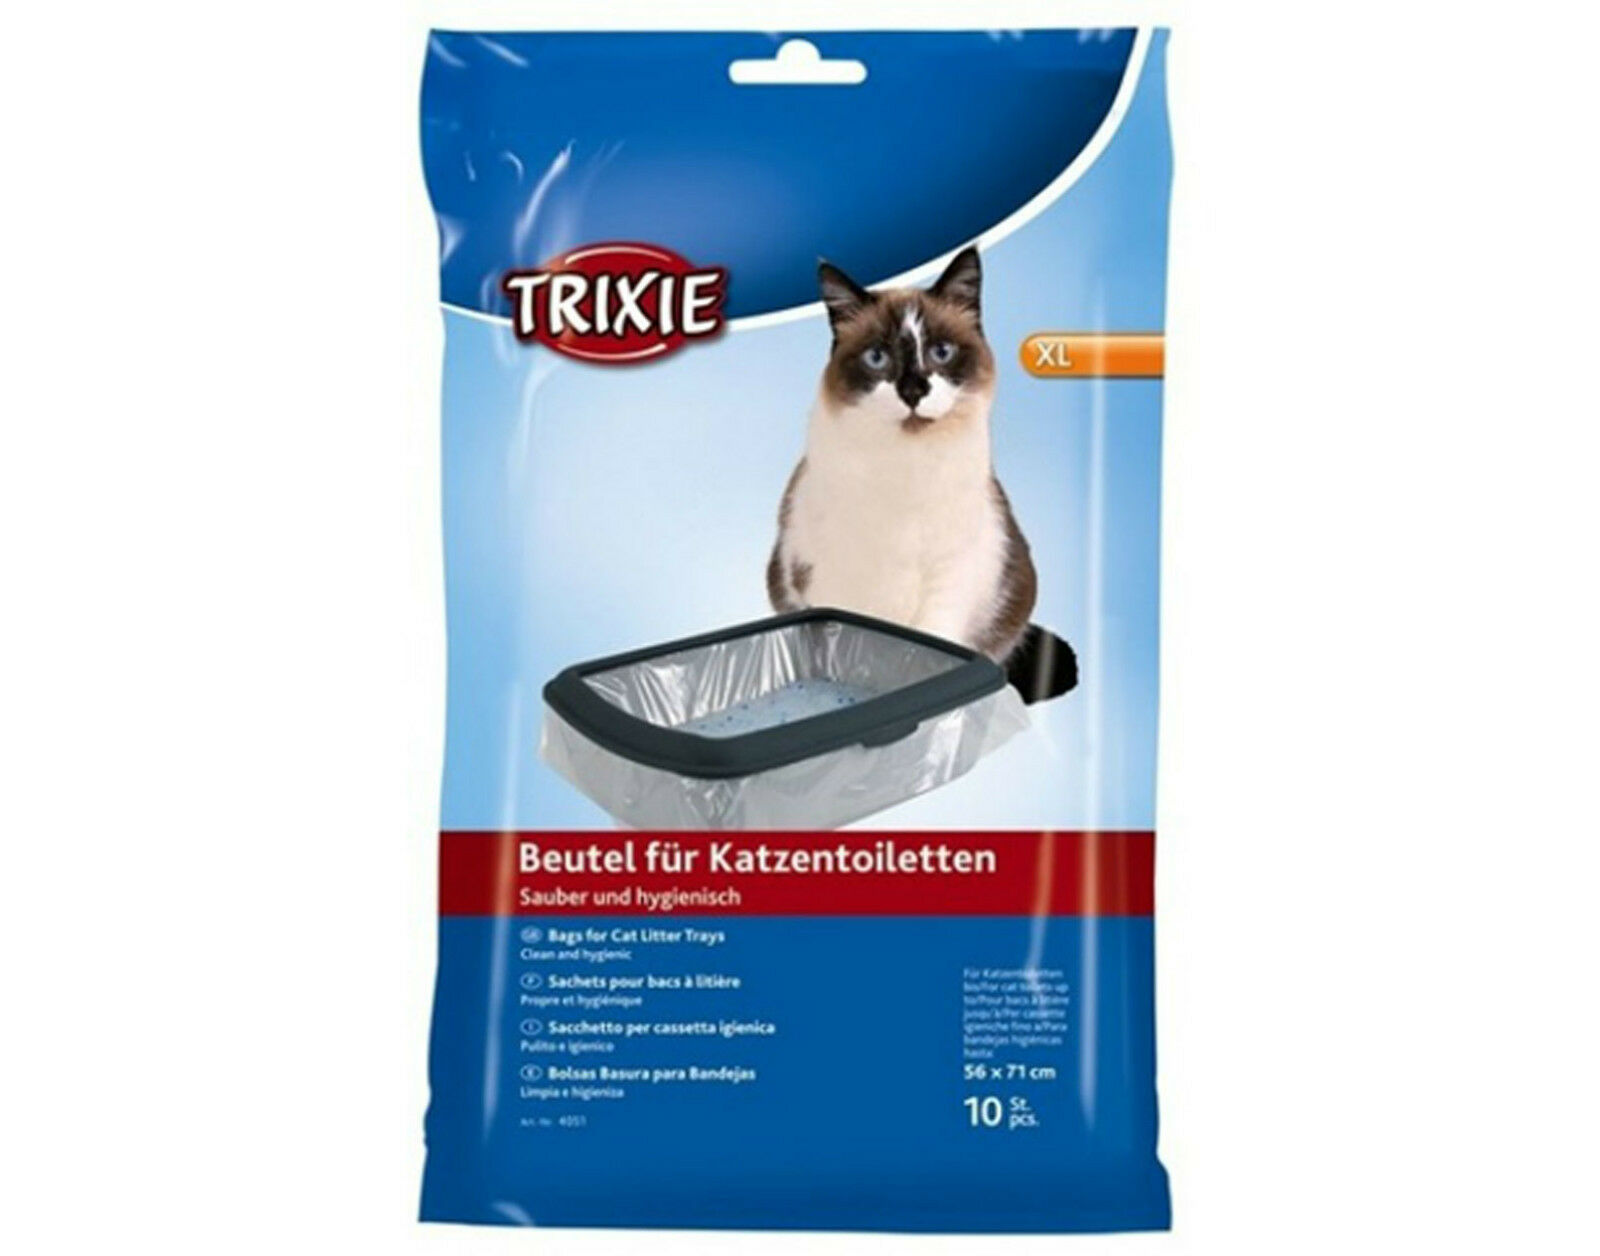 Trixie Cat Litter Tray Bags XL Size 4051